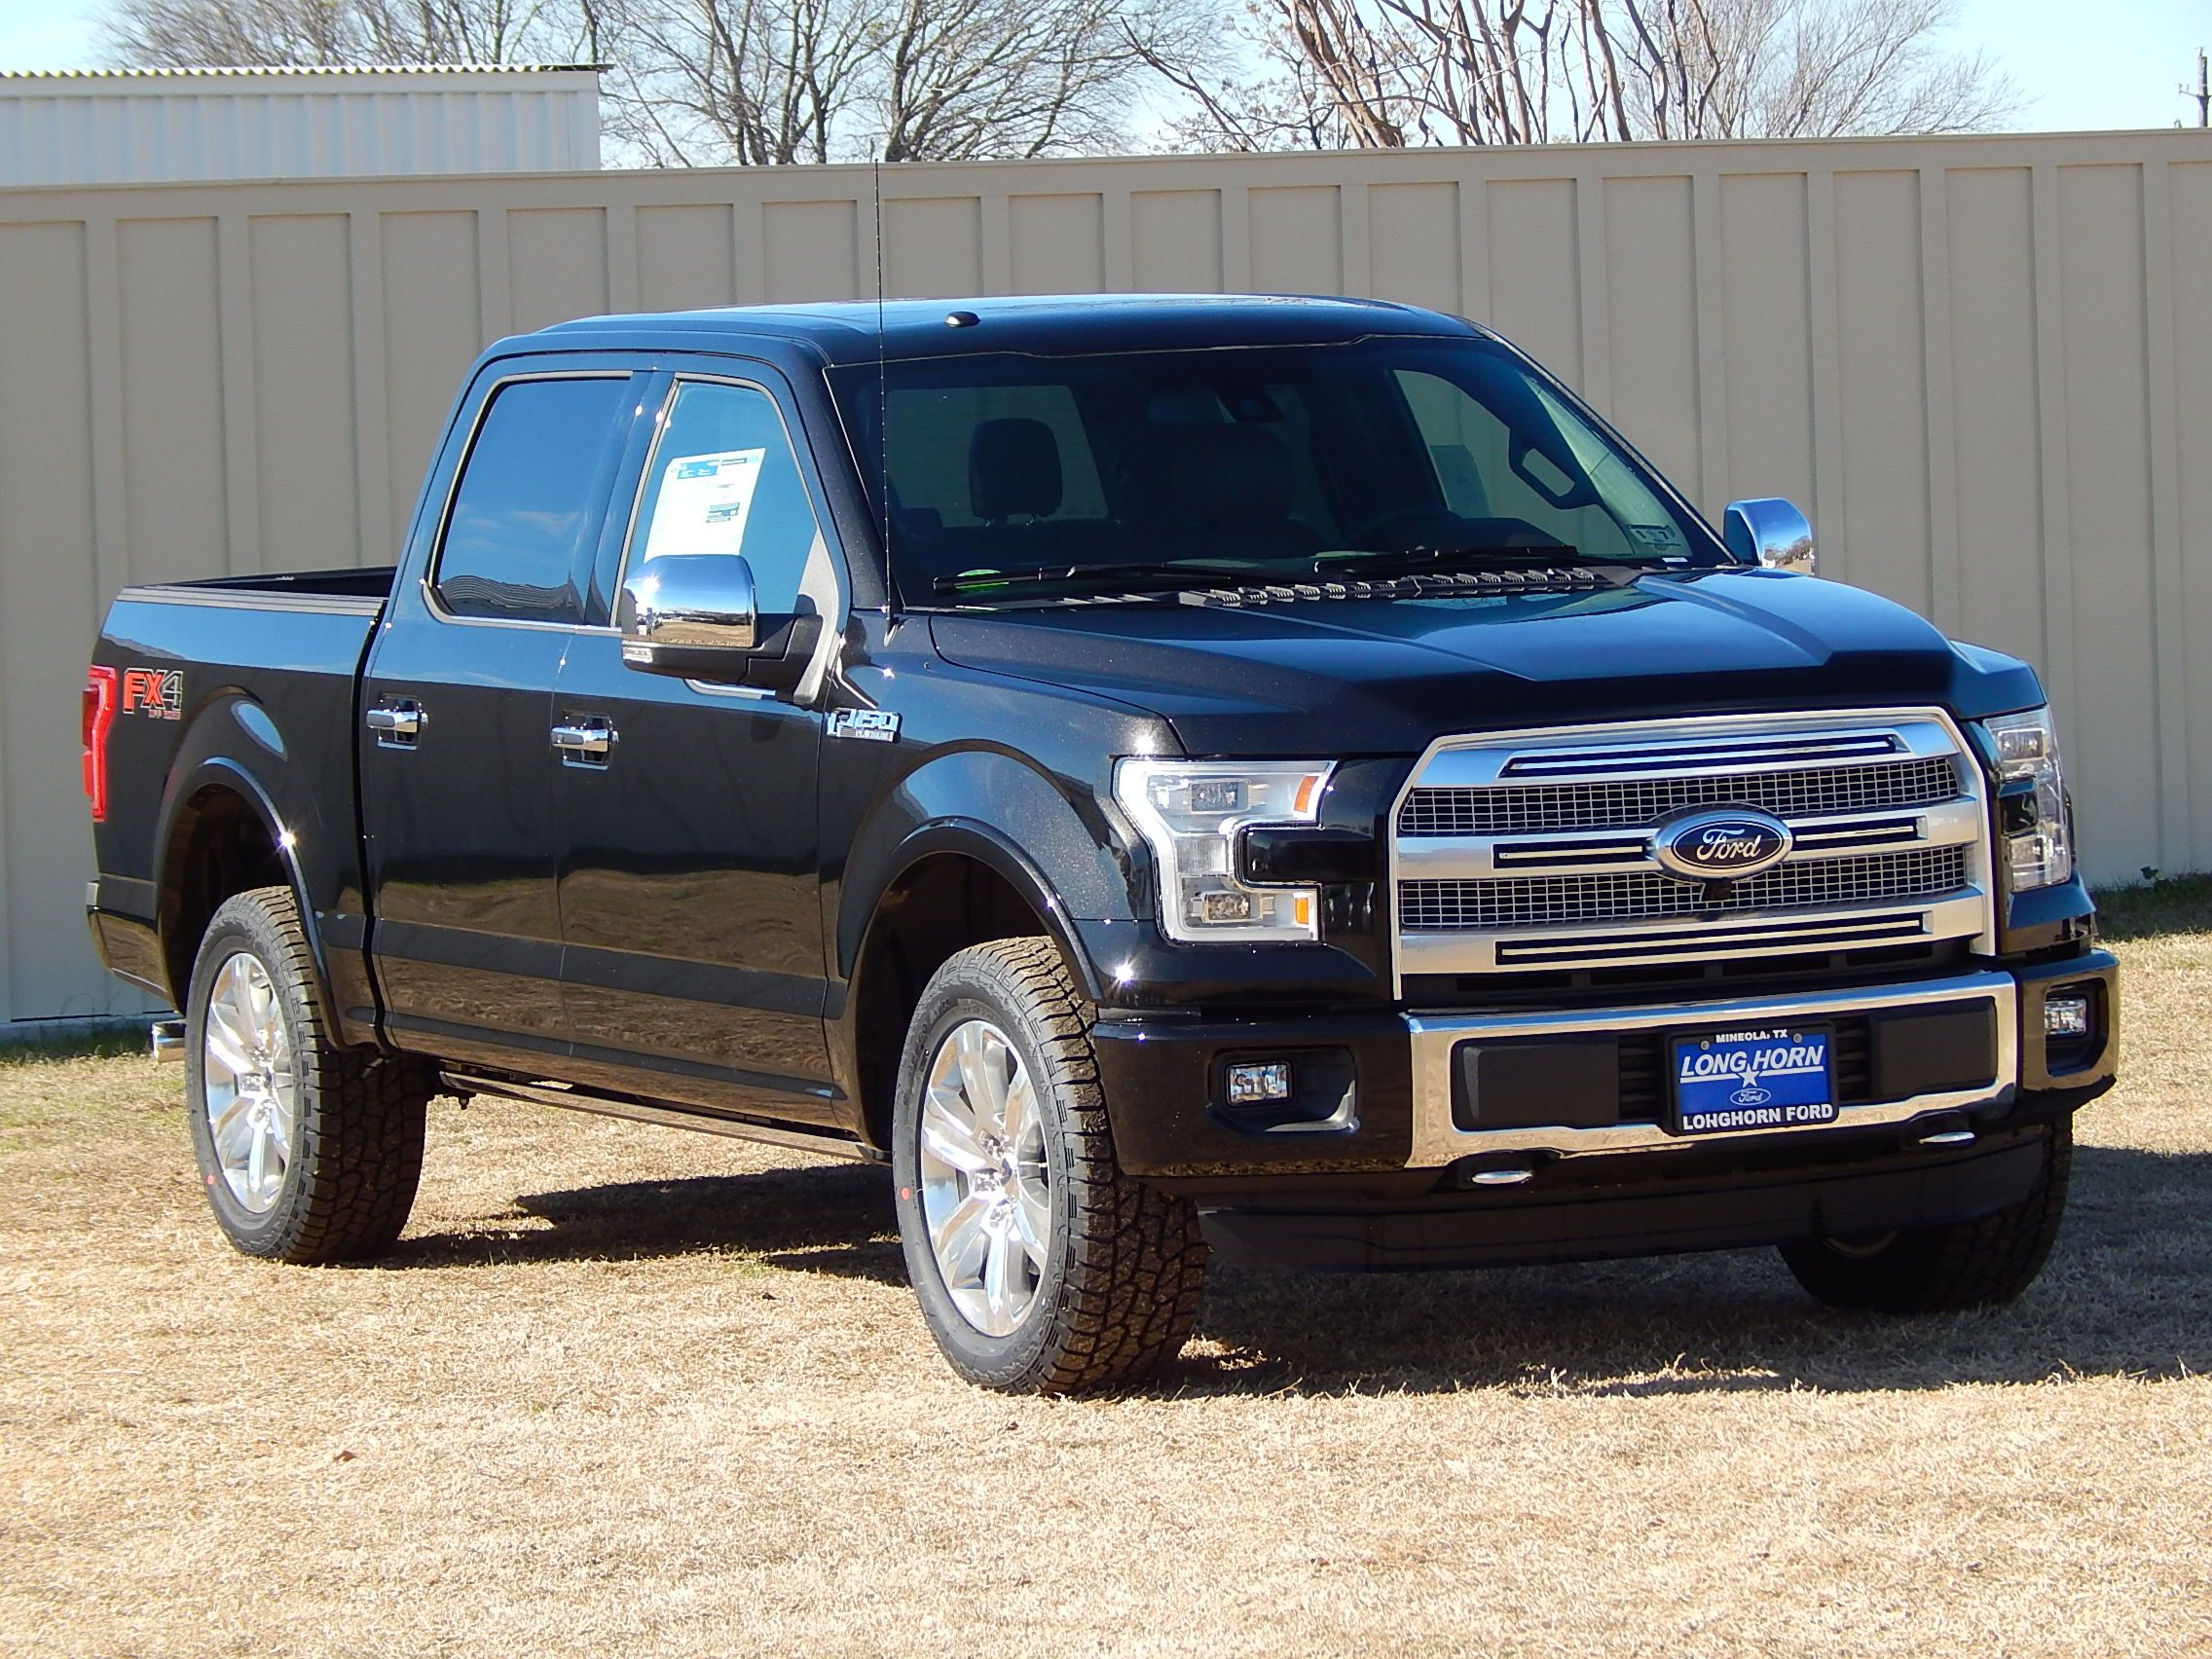 2015 Ford F150 Platinum 4X4 With The Black/Brunello Leather Interior. #F150